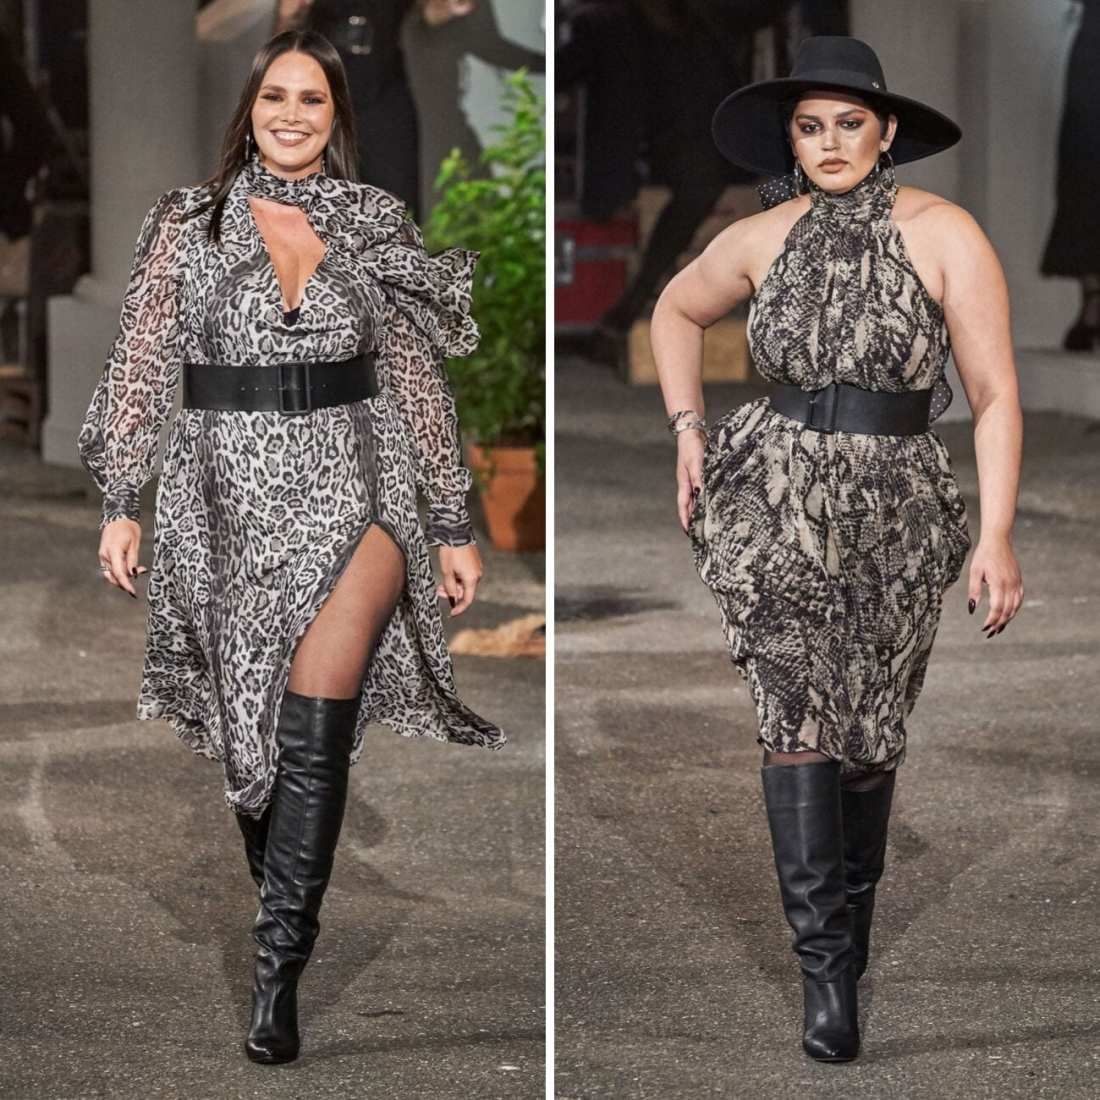 TommyxZendaya Fall 2019 with two models walking down runway. wearing 70's funk and menswear for women fashion trend snake skin